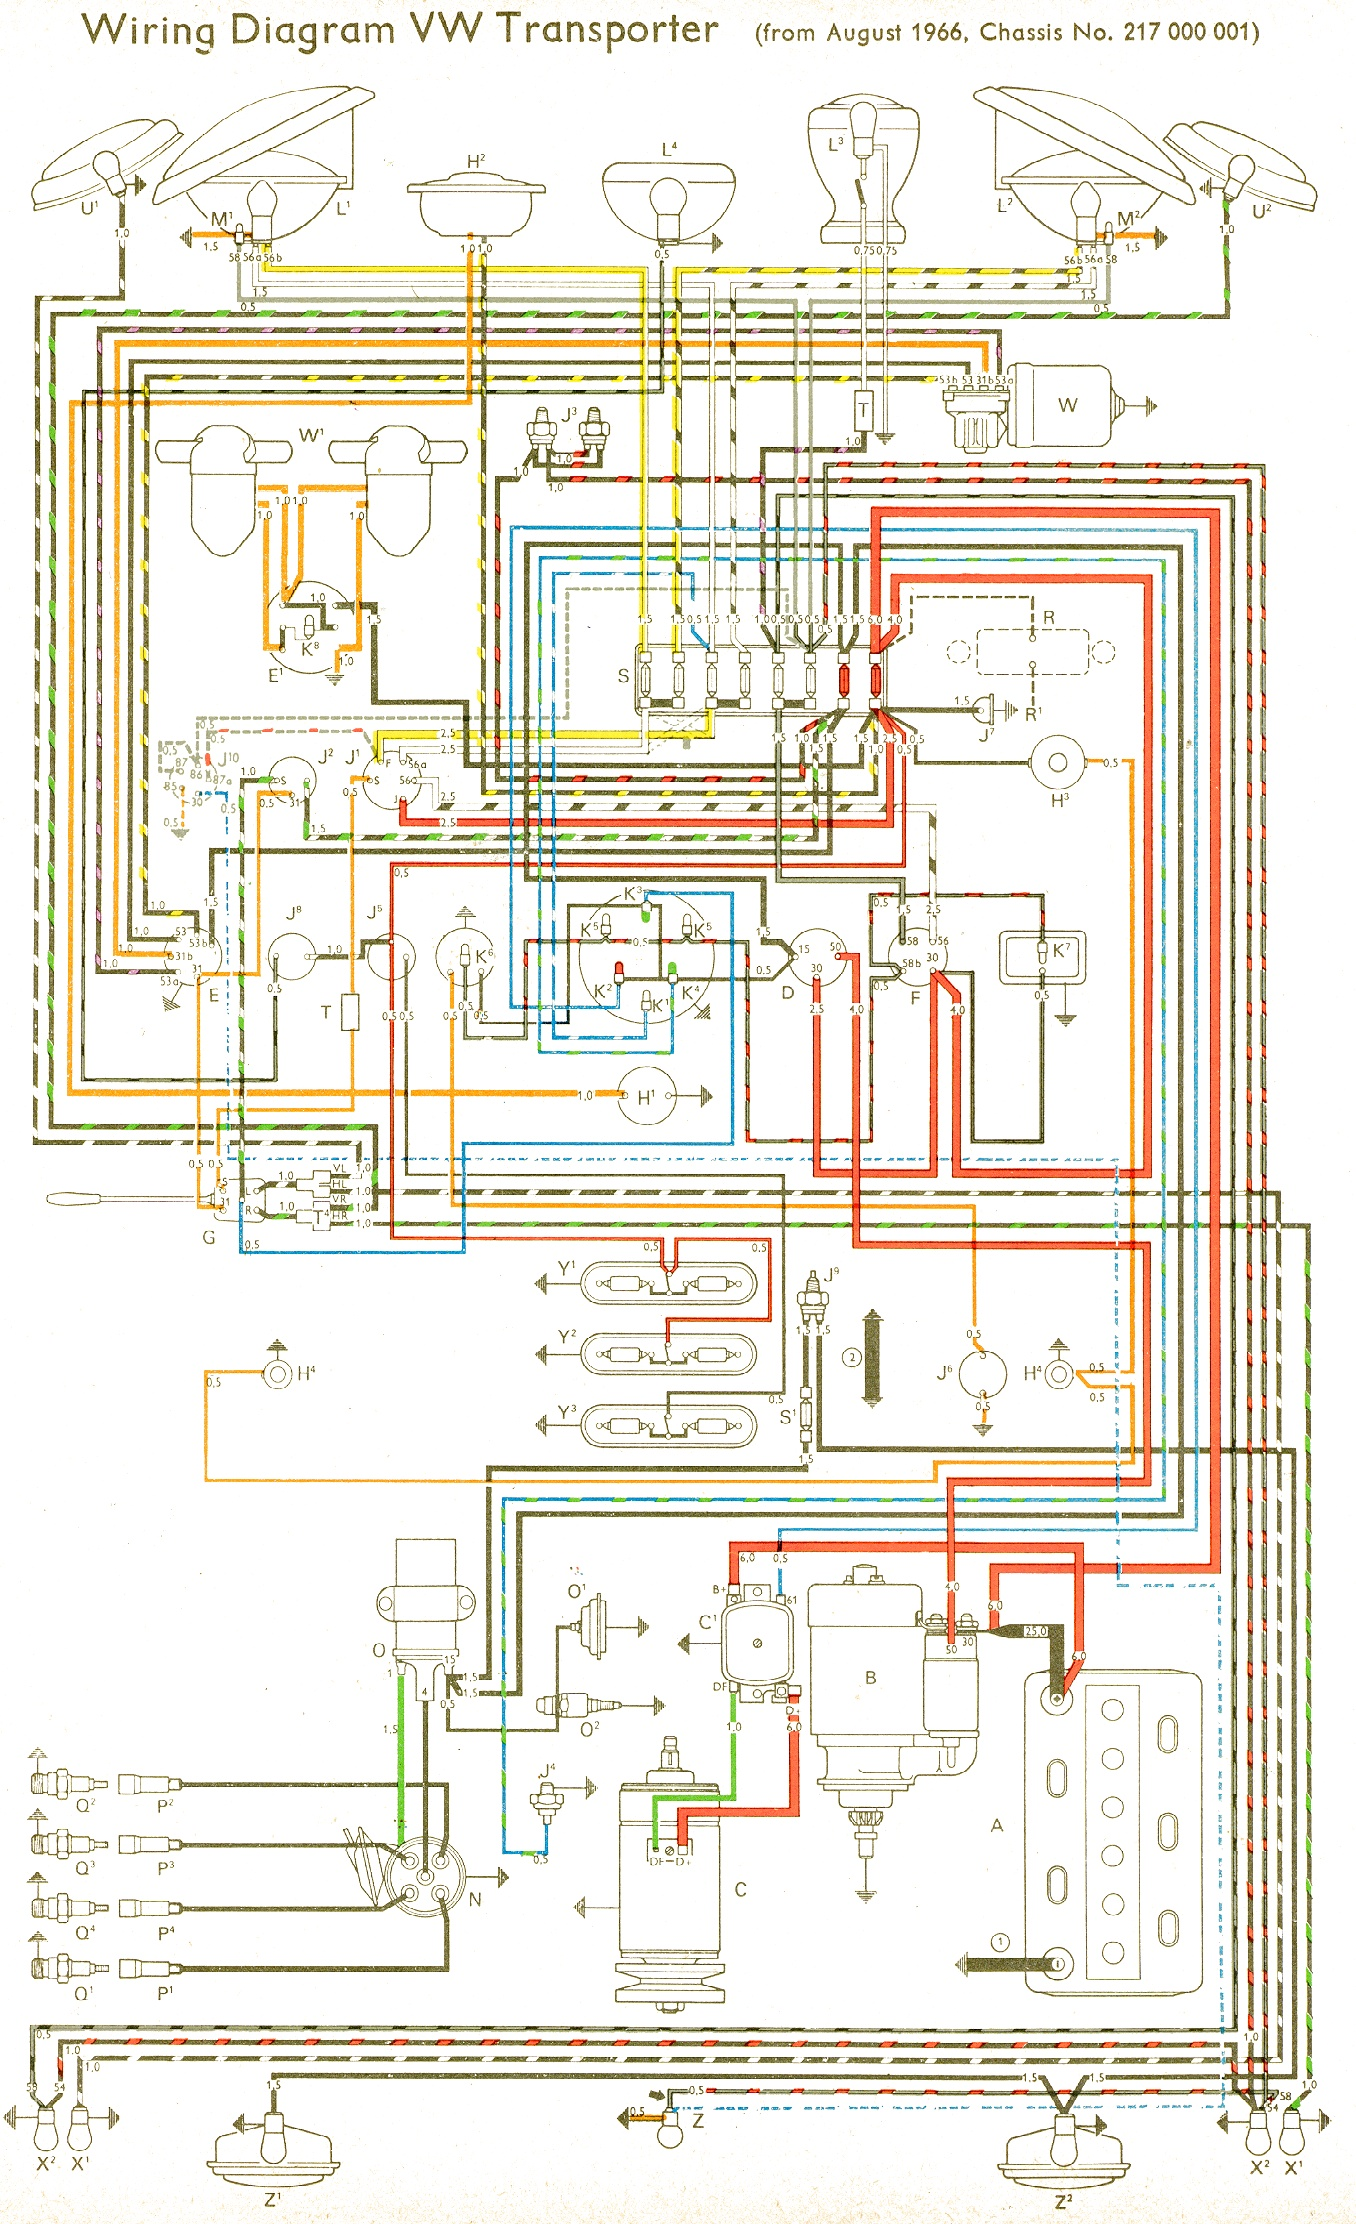 bus 66 bus wiring diagram vw wiring harness diagram \u2022 wiring diagrams j Volkswagen Type 2 Wiring Harness at mifinder.co